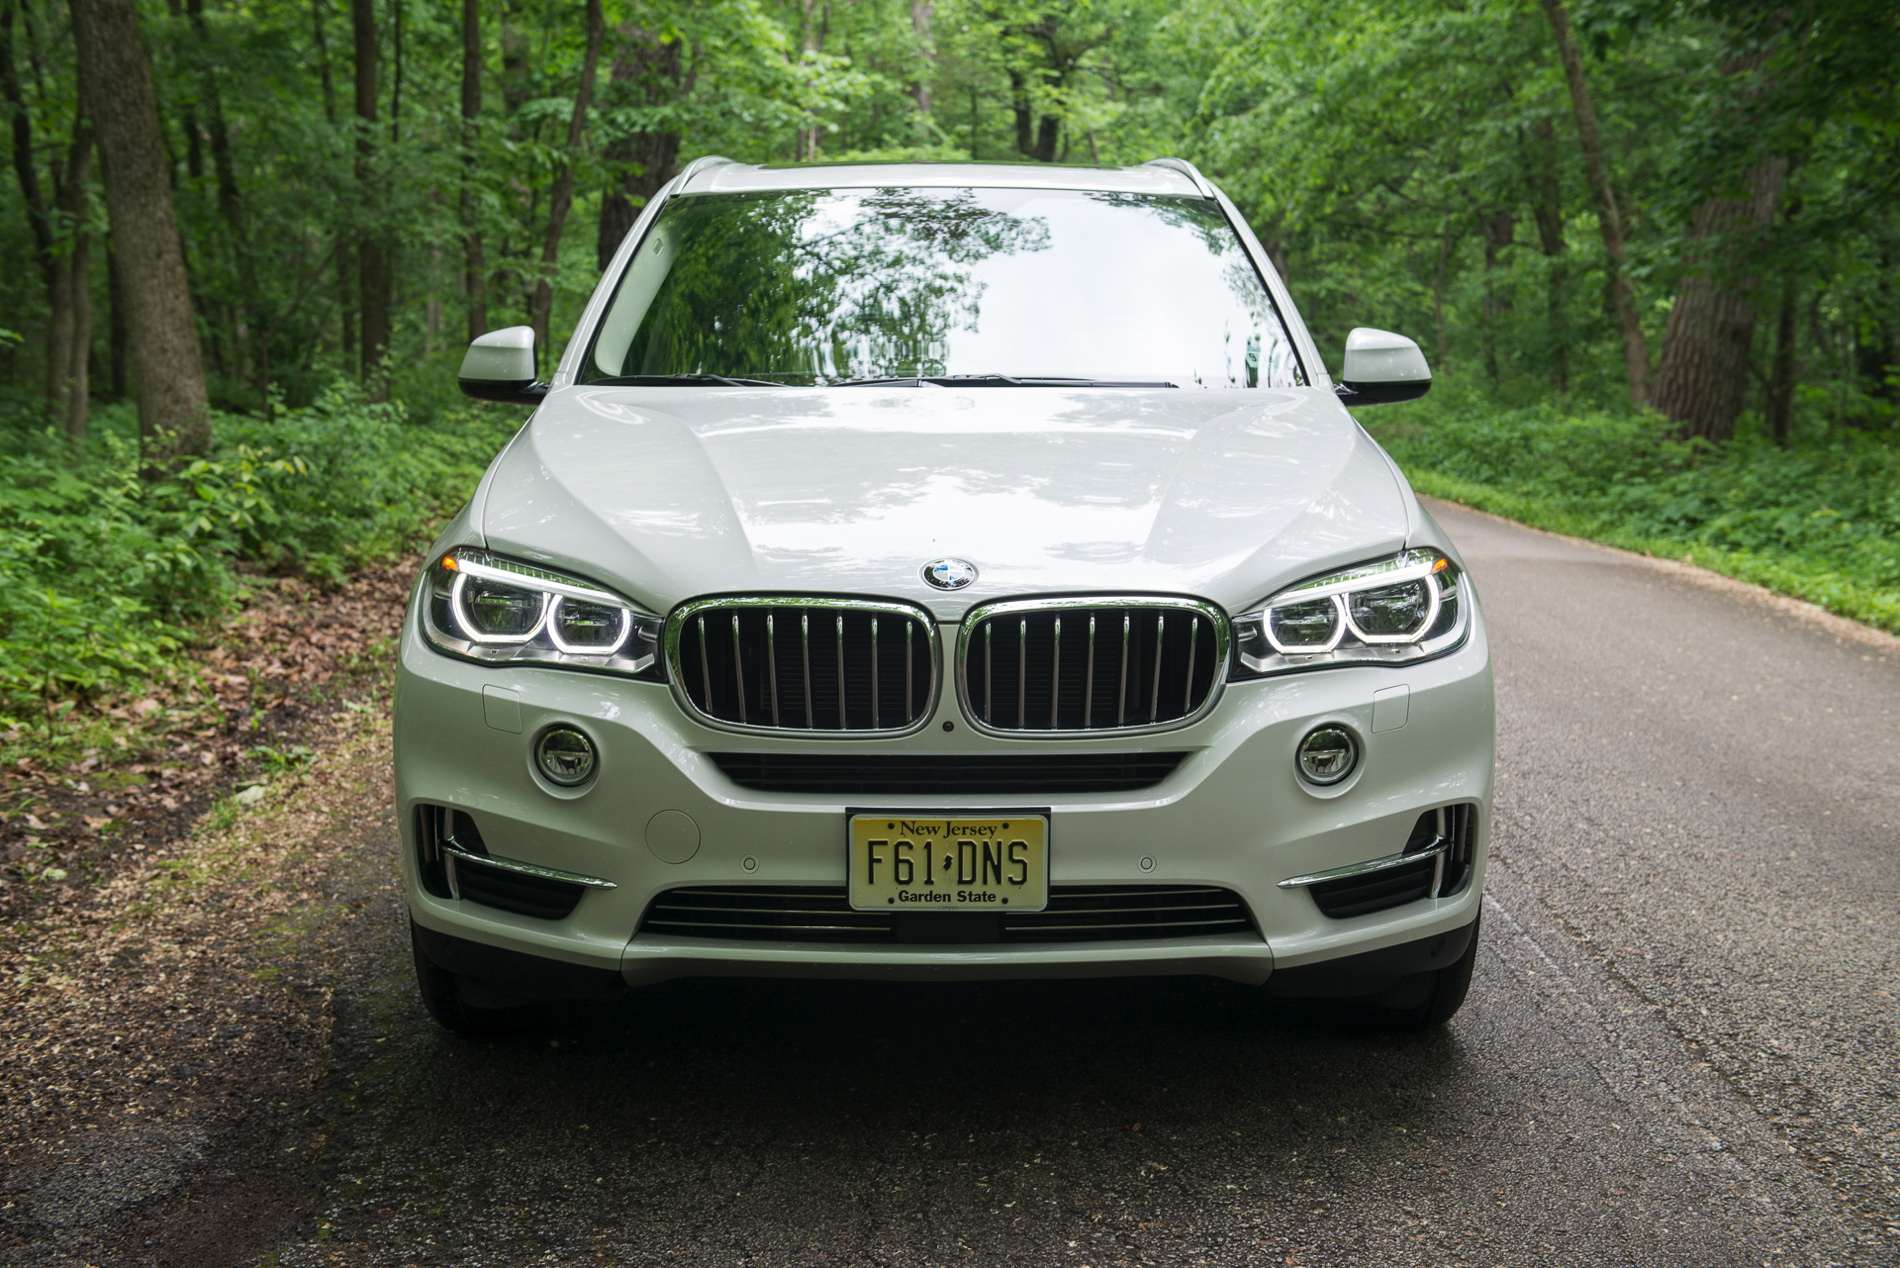 city packages camera bmw passenger seattle weather cold rear navigation premium washington seating revo